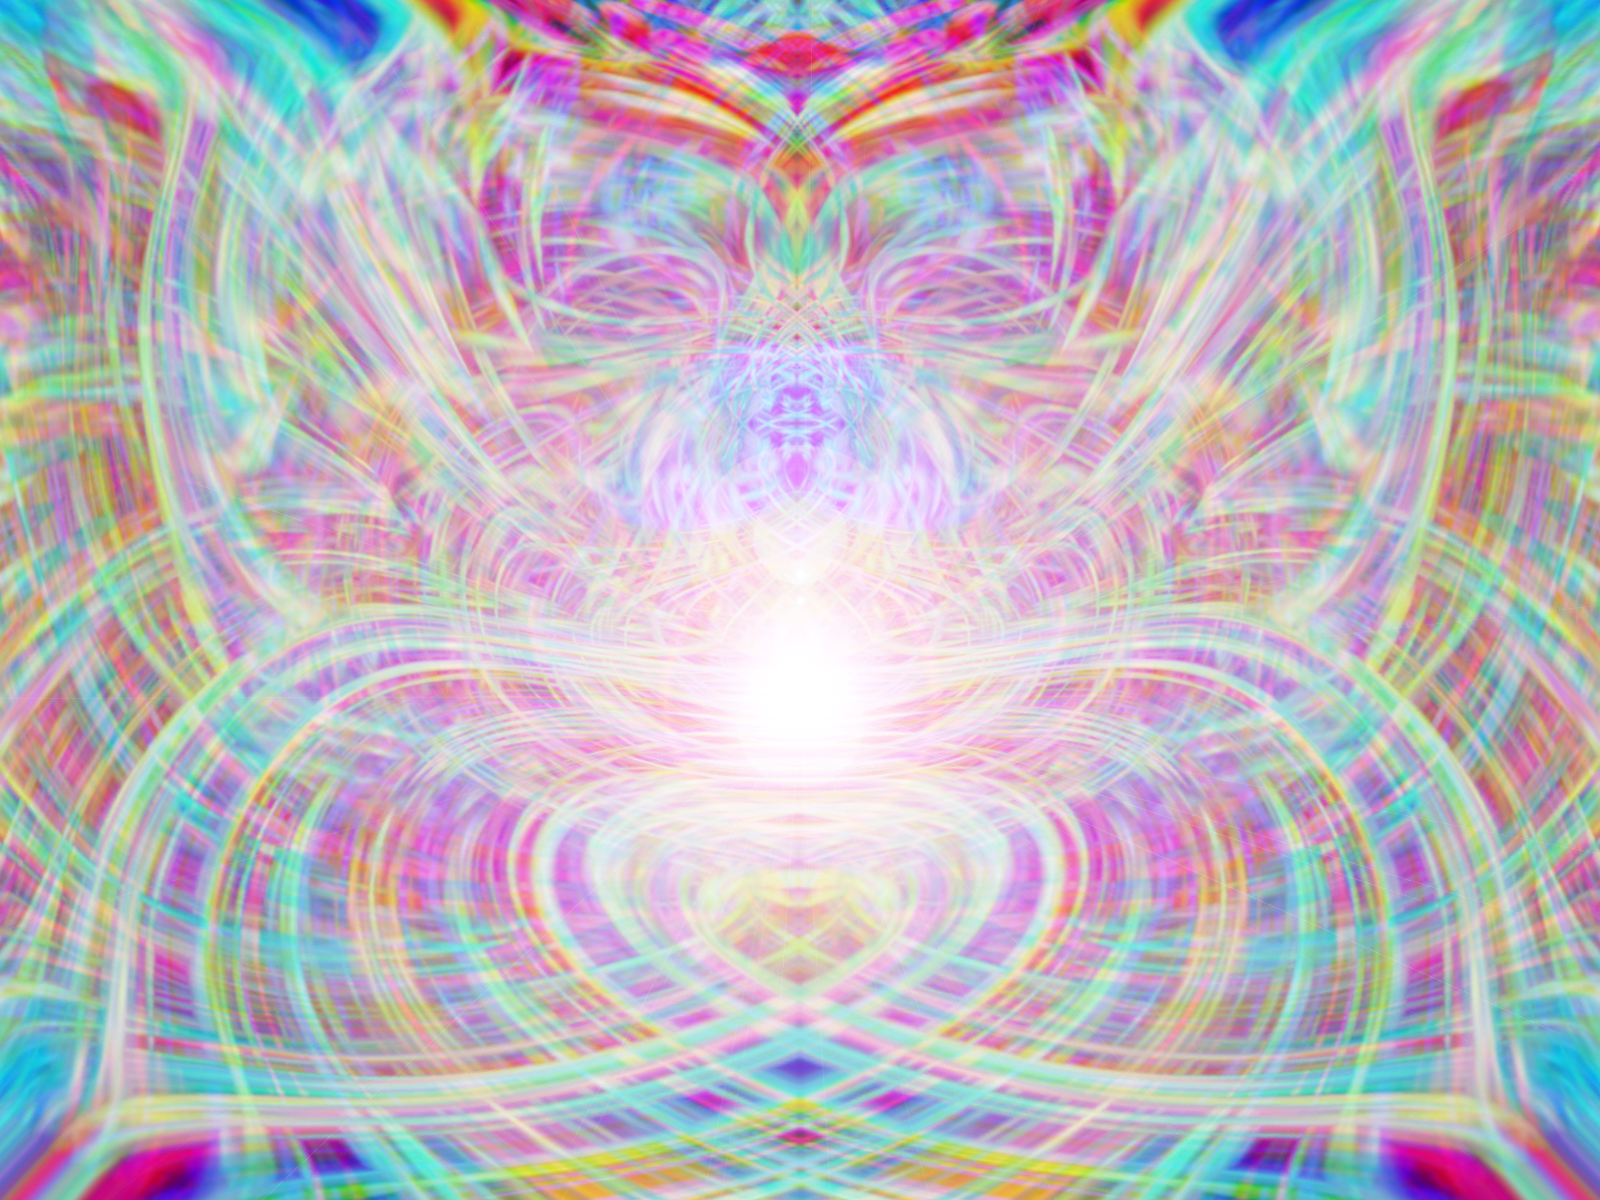 Spiritual Awakening by DrStyles on DeviantArt